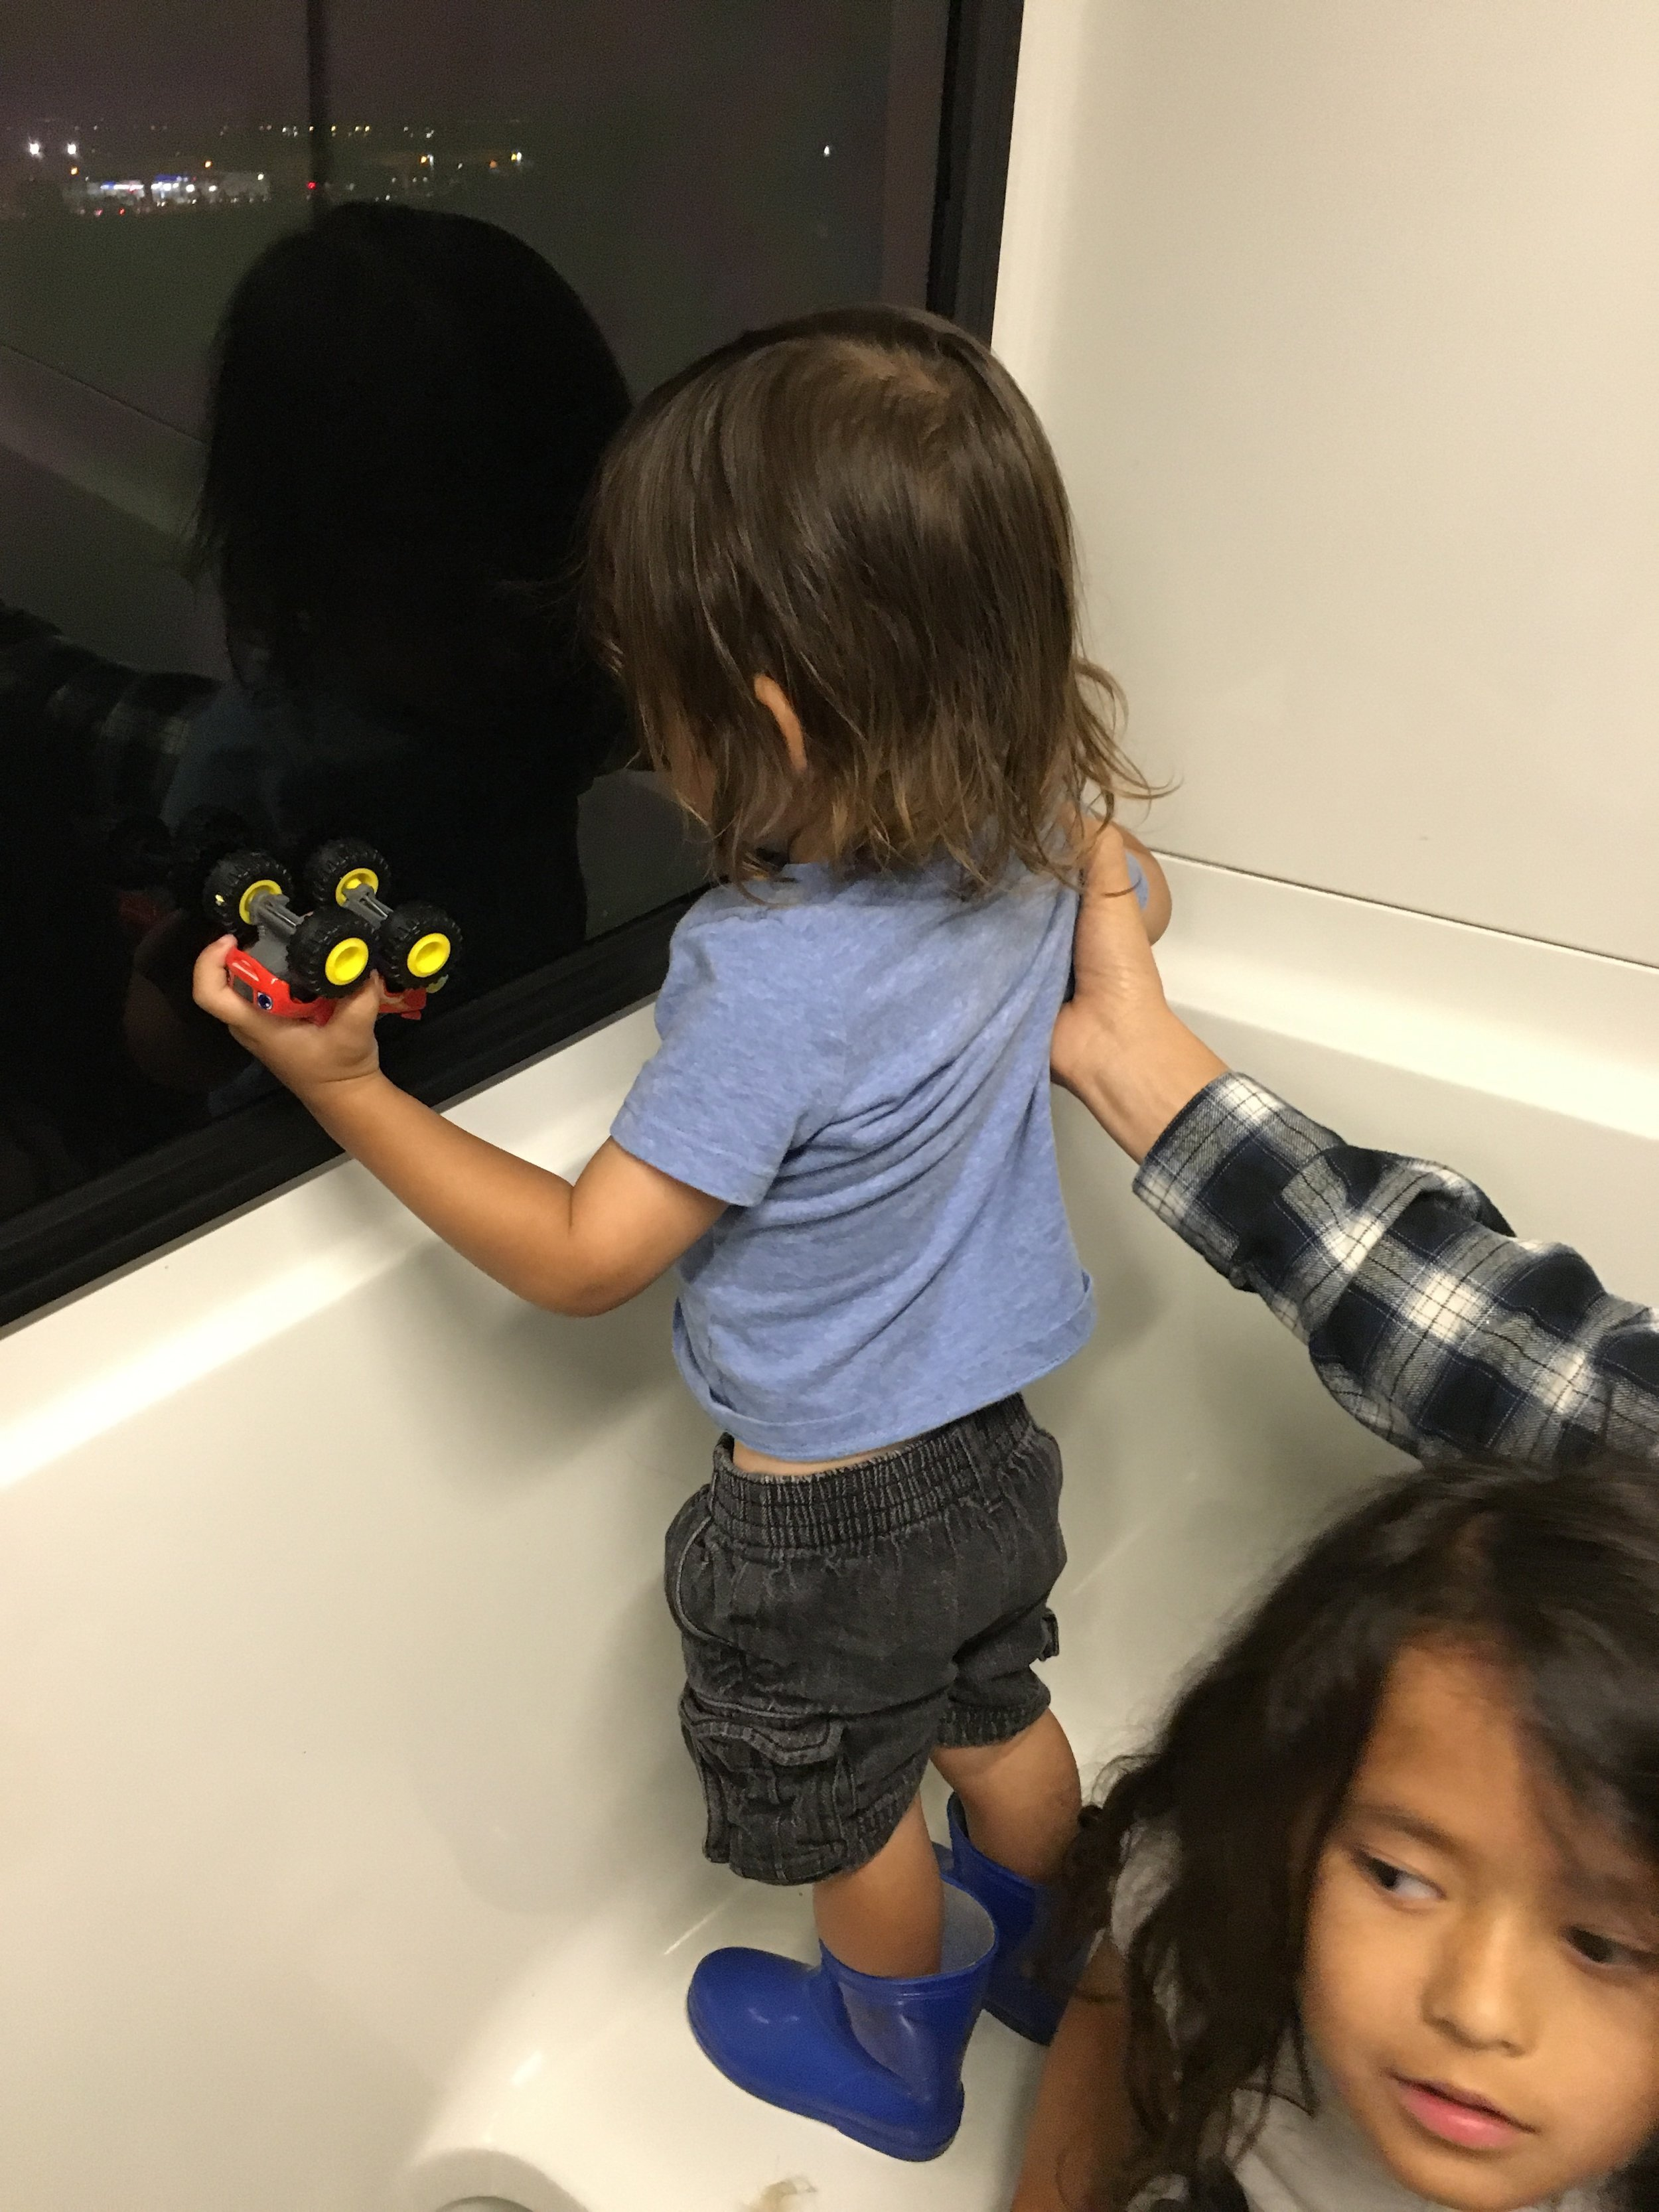 Tried to stoke my boy out , and give him a monorail ride since he likes trains.